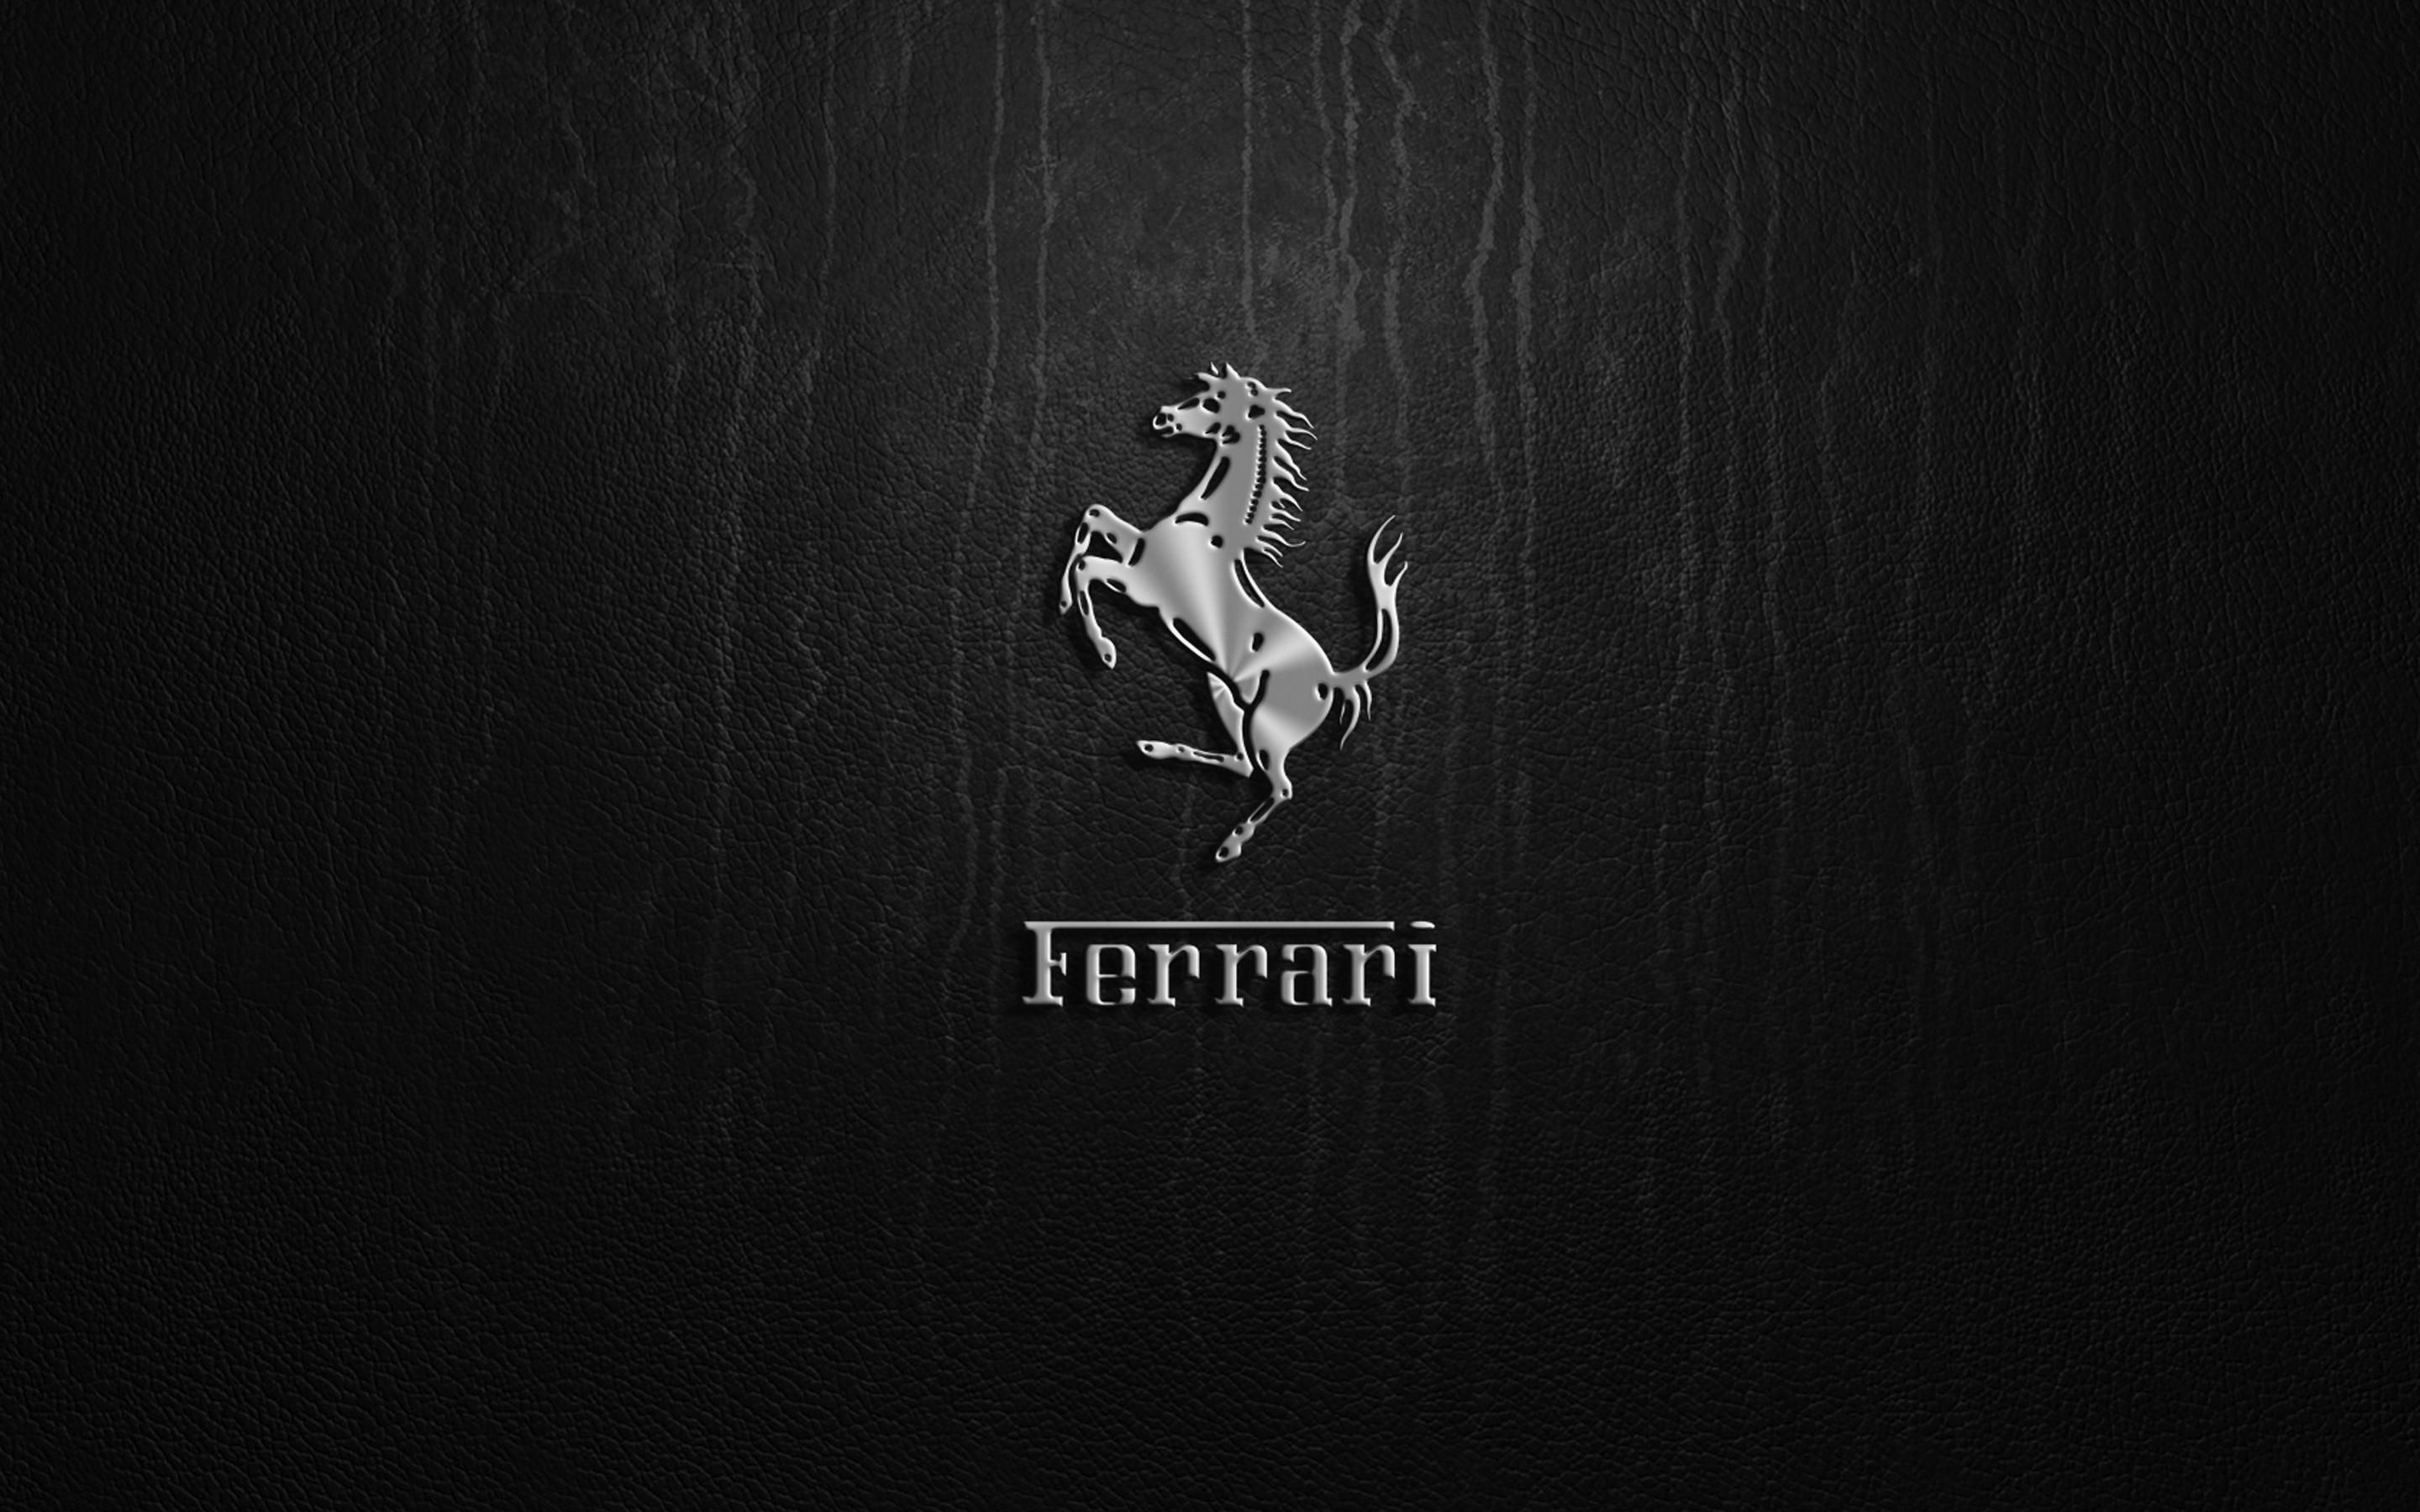 Ferrari wallpaper logo for android vehicles wallpapers ferrari wallpaper logo for android vanachro Image collections